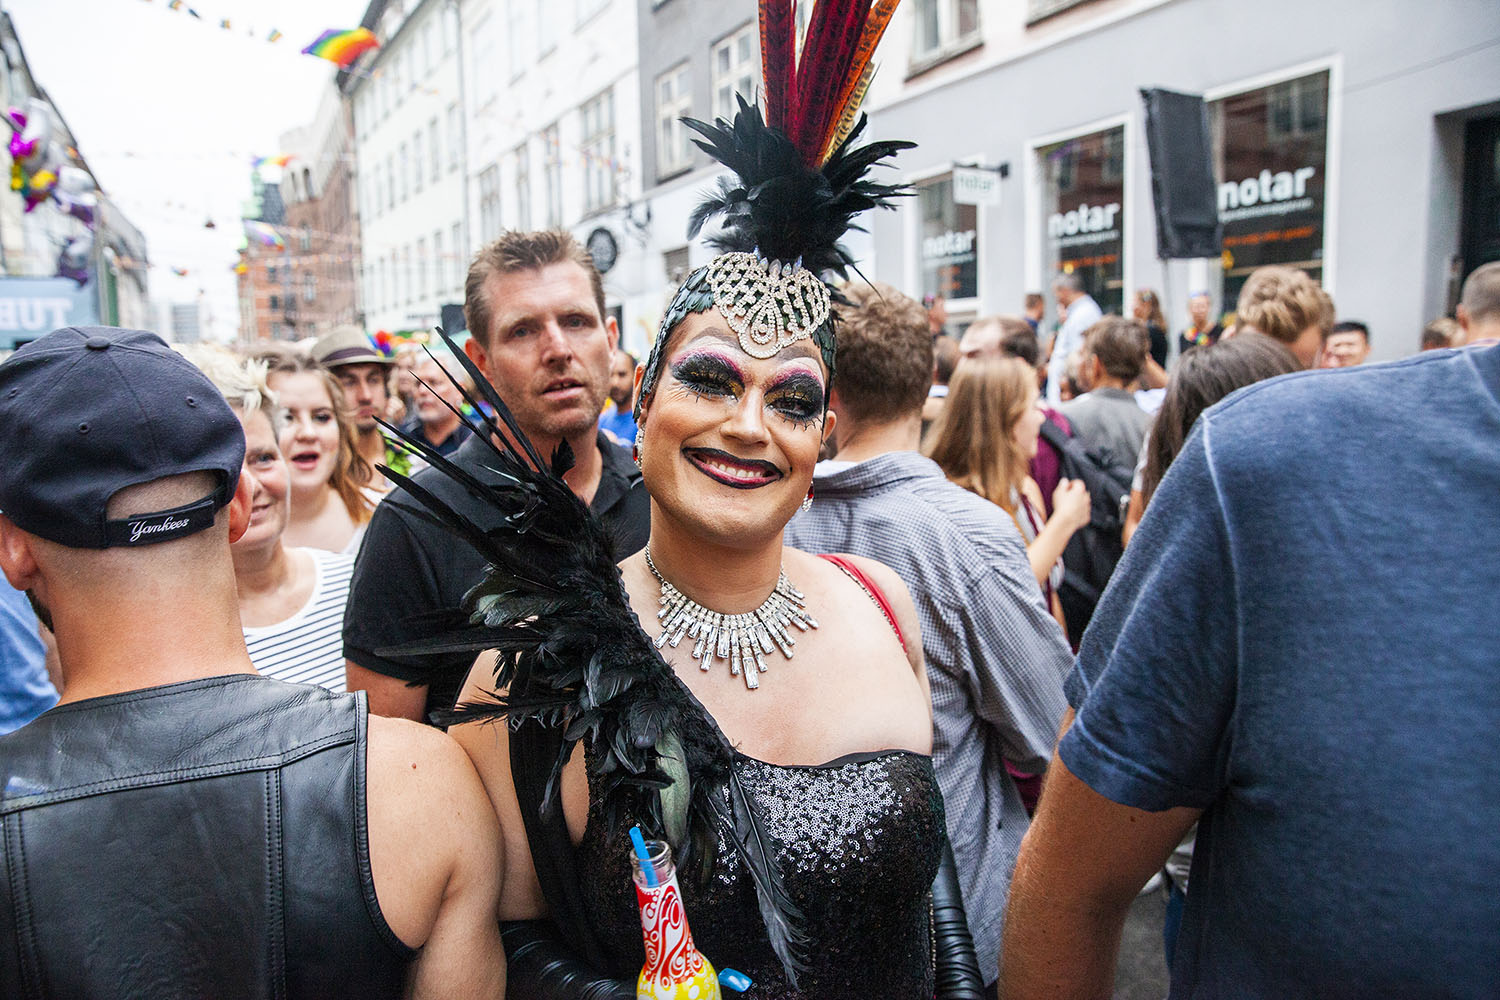 CphPride2018_HelenaLundquist_6